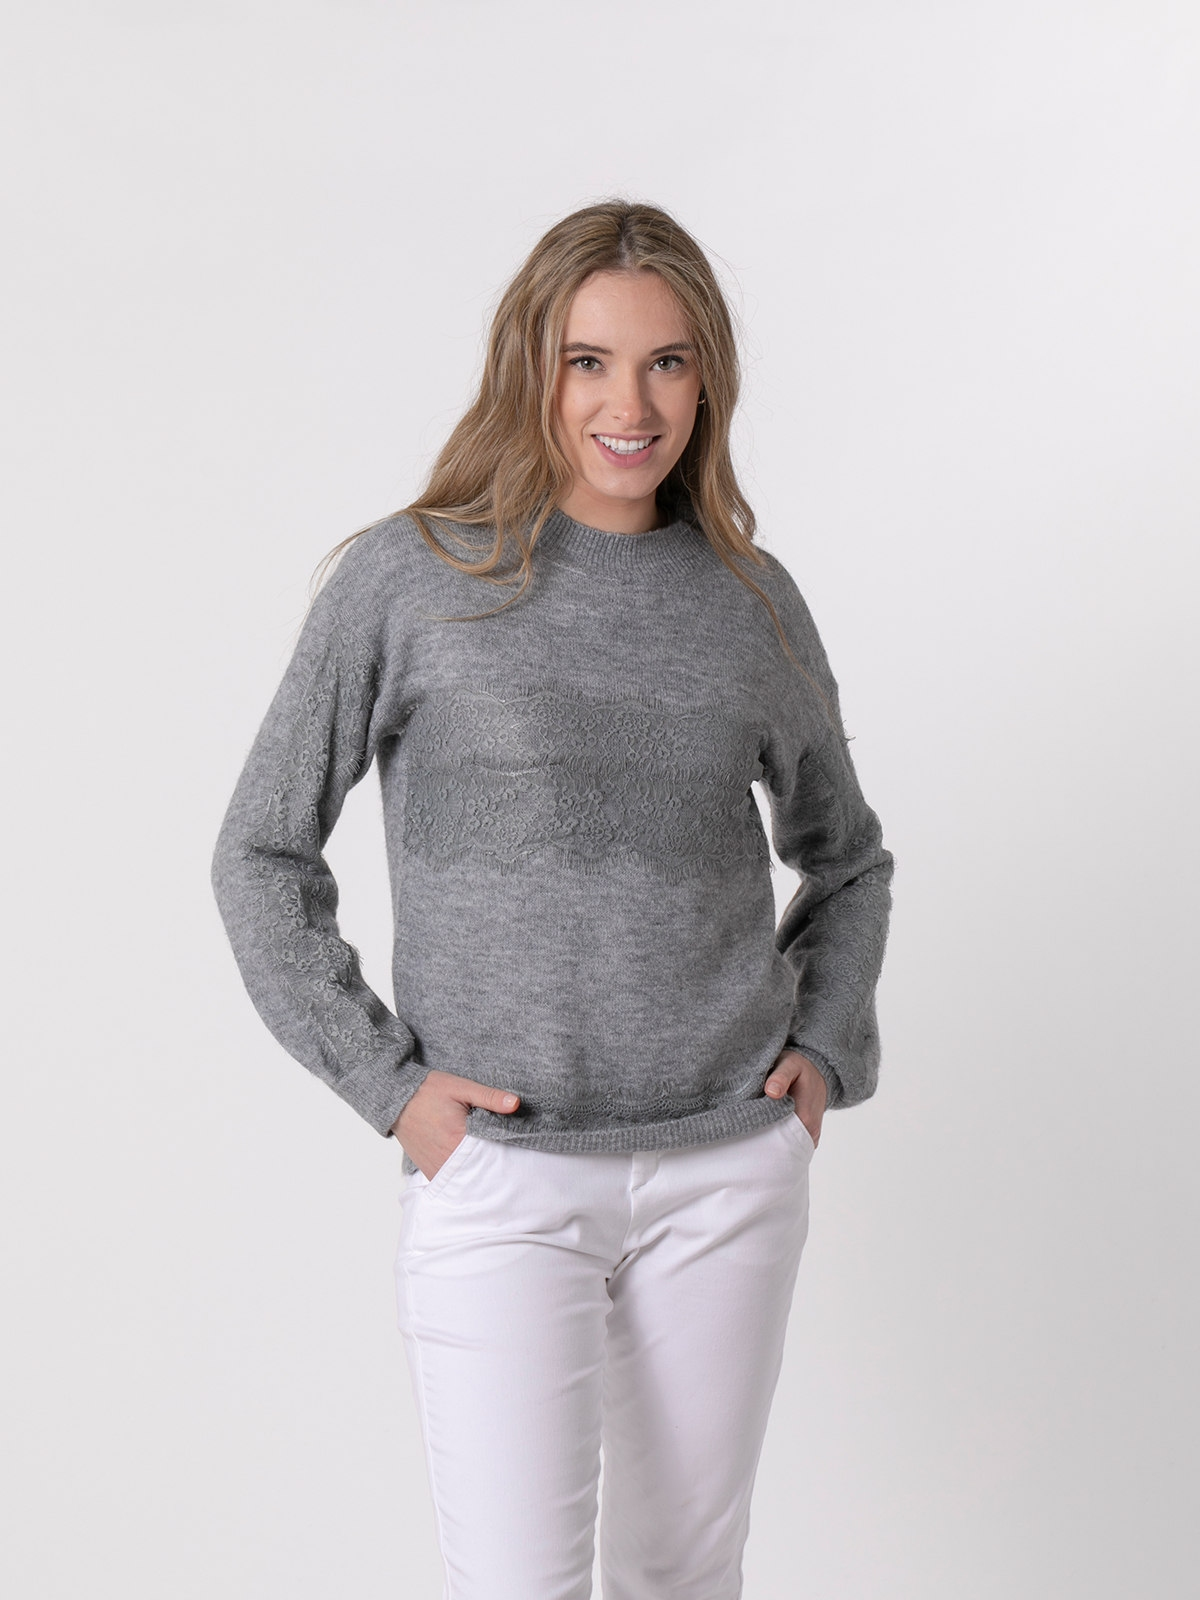 Woman Short lace knit sweater Grey